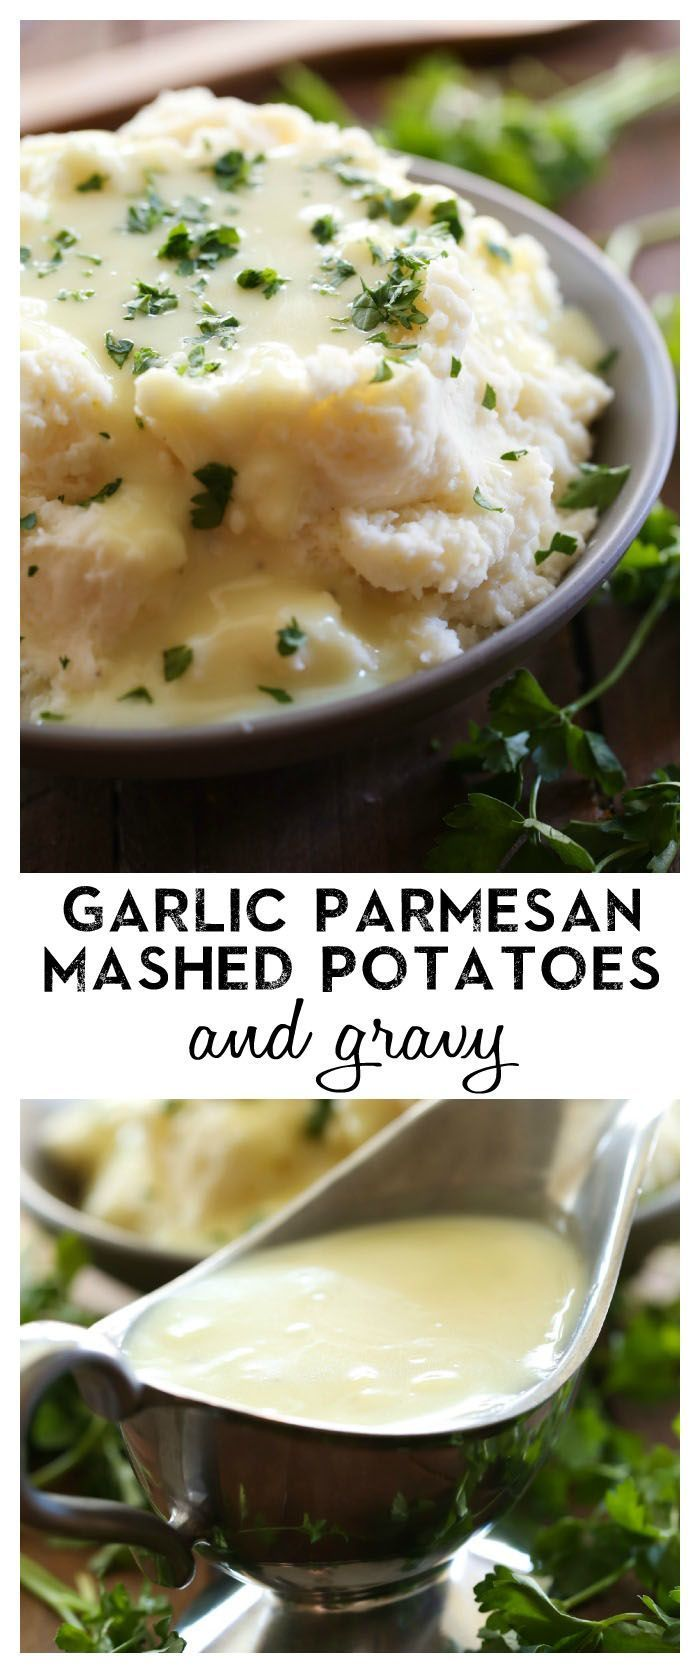 Mashed Potatoes and Gravy Garlic Parmesan Mashed Potatoes and Gravy from chef-in- ...The flavor of these potatoes is outstanding and the gravy is equally amazing! This is the perfect side dish for almost any meal!Garlic Parmesan Mashed Potatoes and Gravy from chef-in- ...The flavor of these potatoes is outstanding and the gravy is eq...